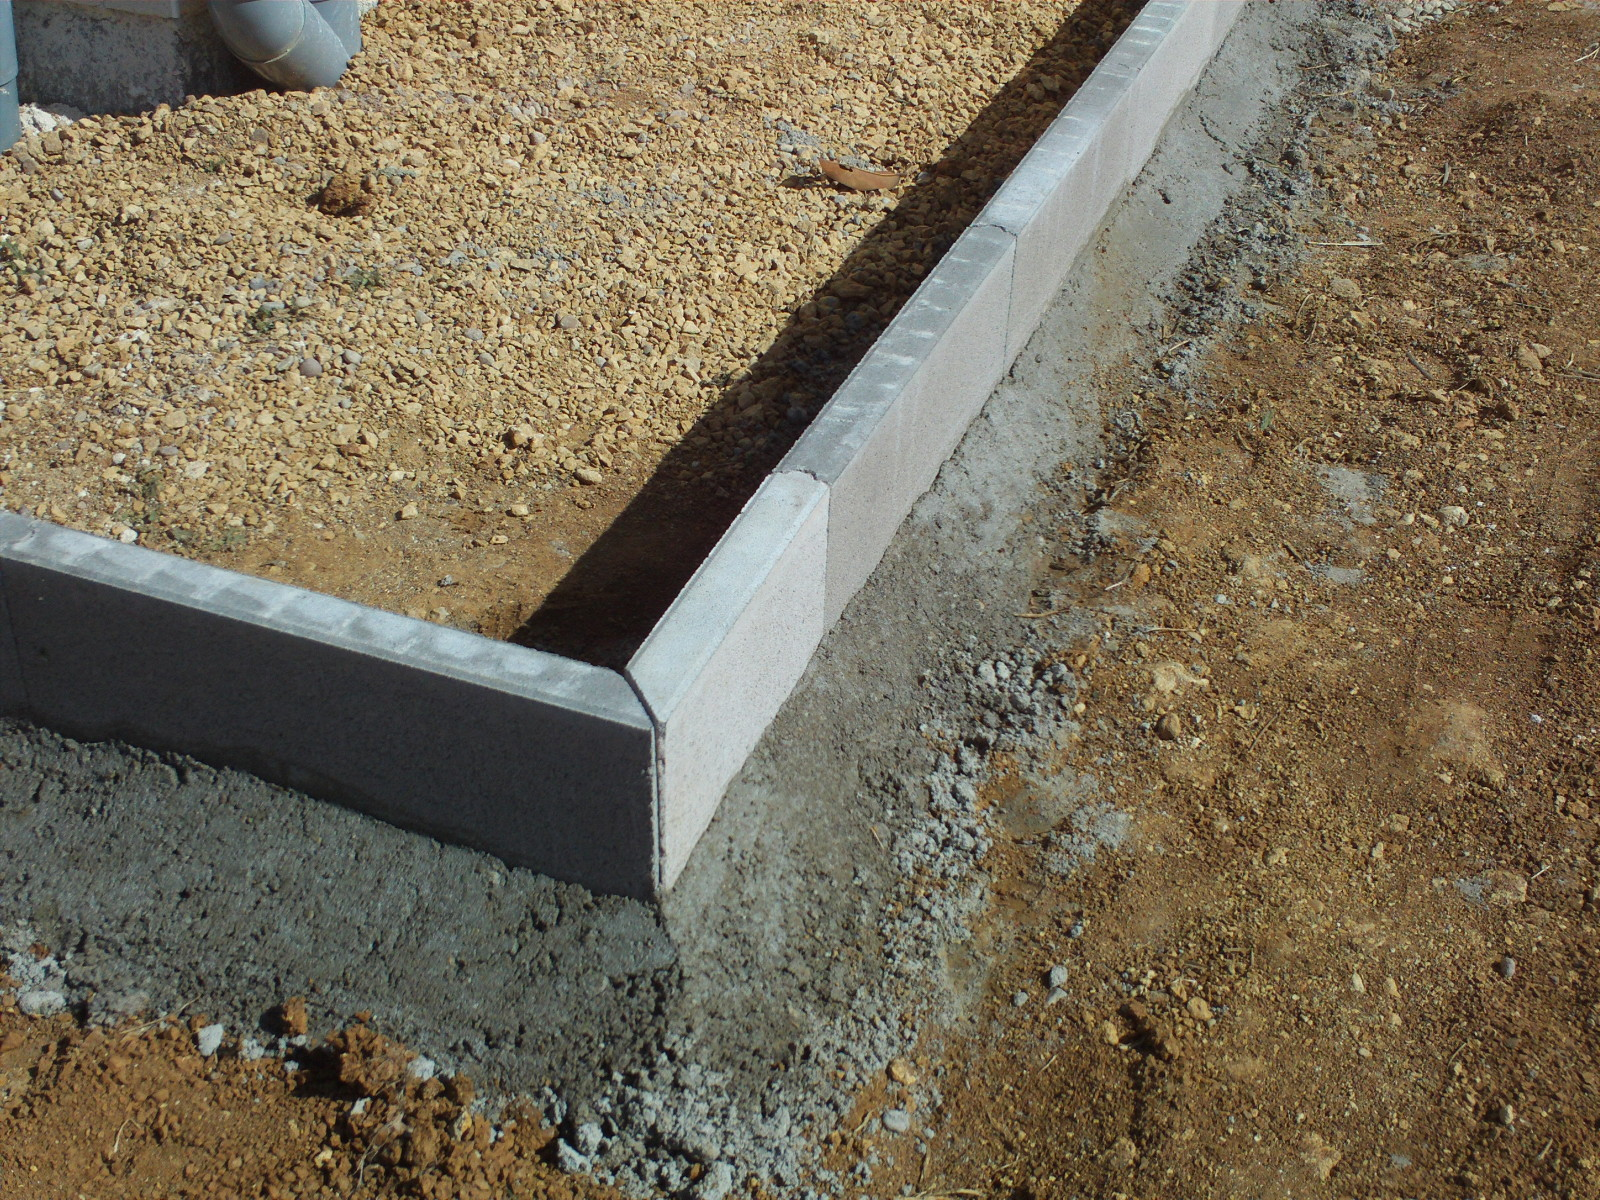 Comment Couper Des Angles Bordure En Beton